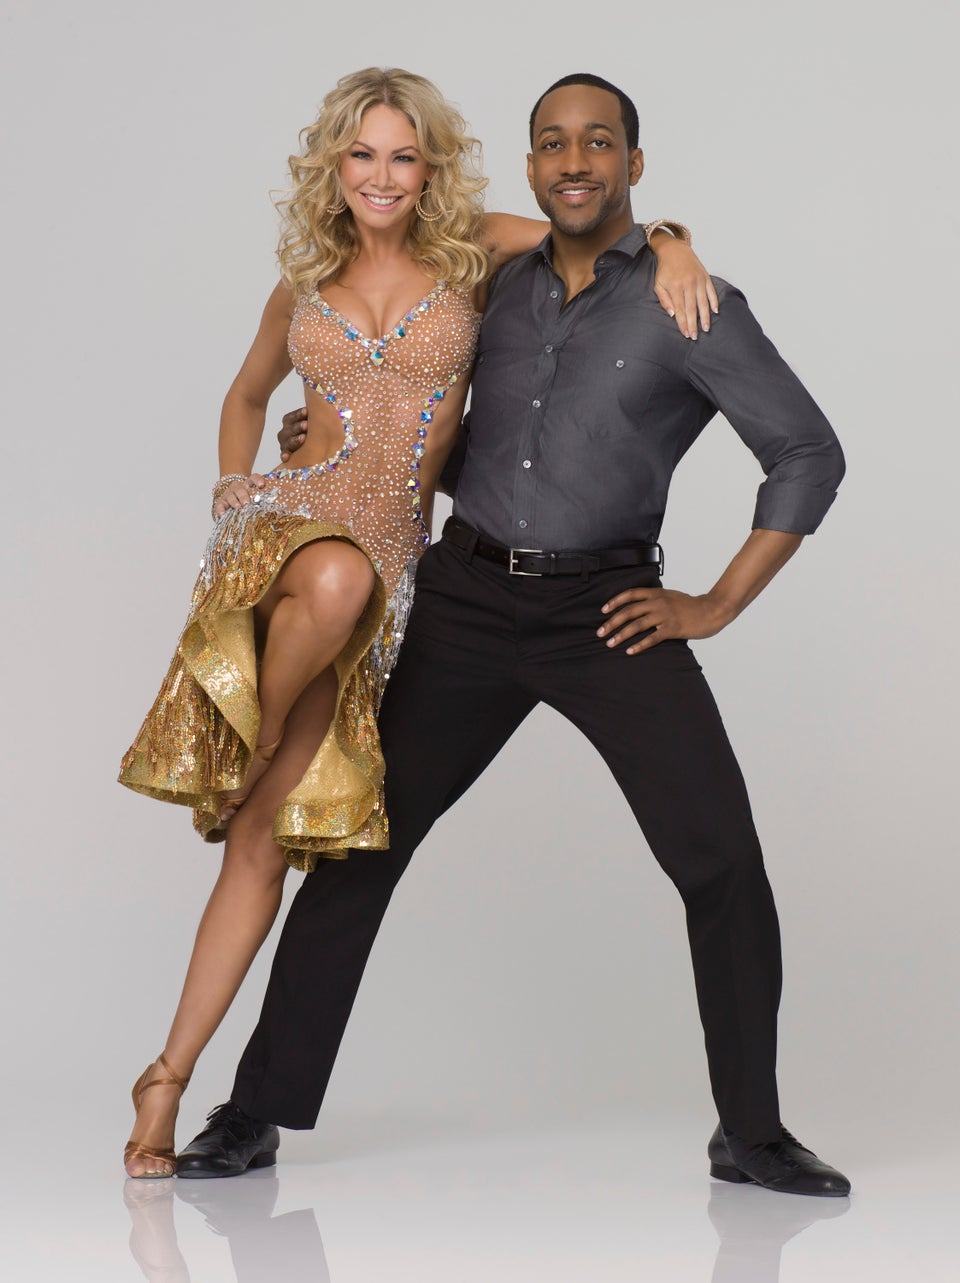 Jaleel White Calls 'DWTS' Drama 'Completely Exaggerated'